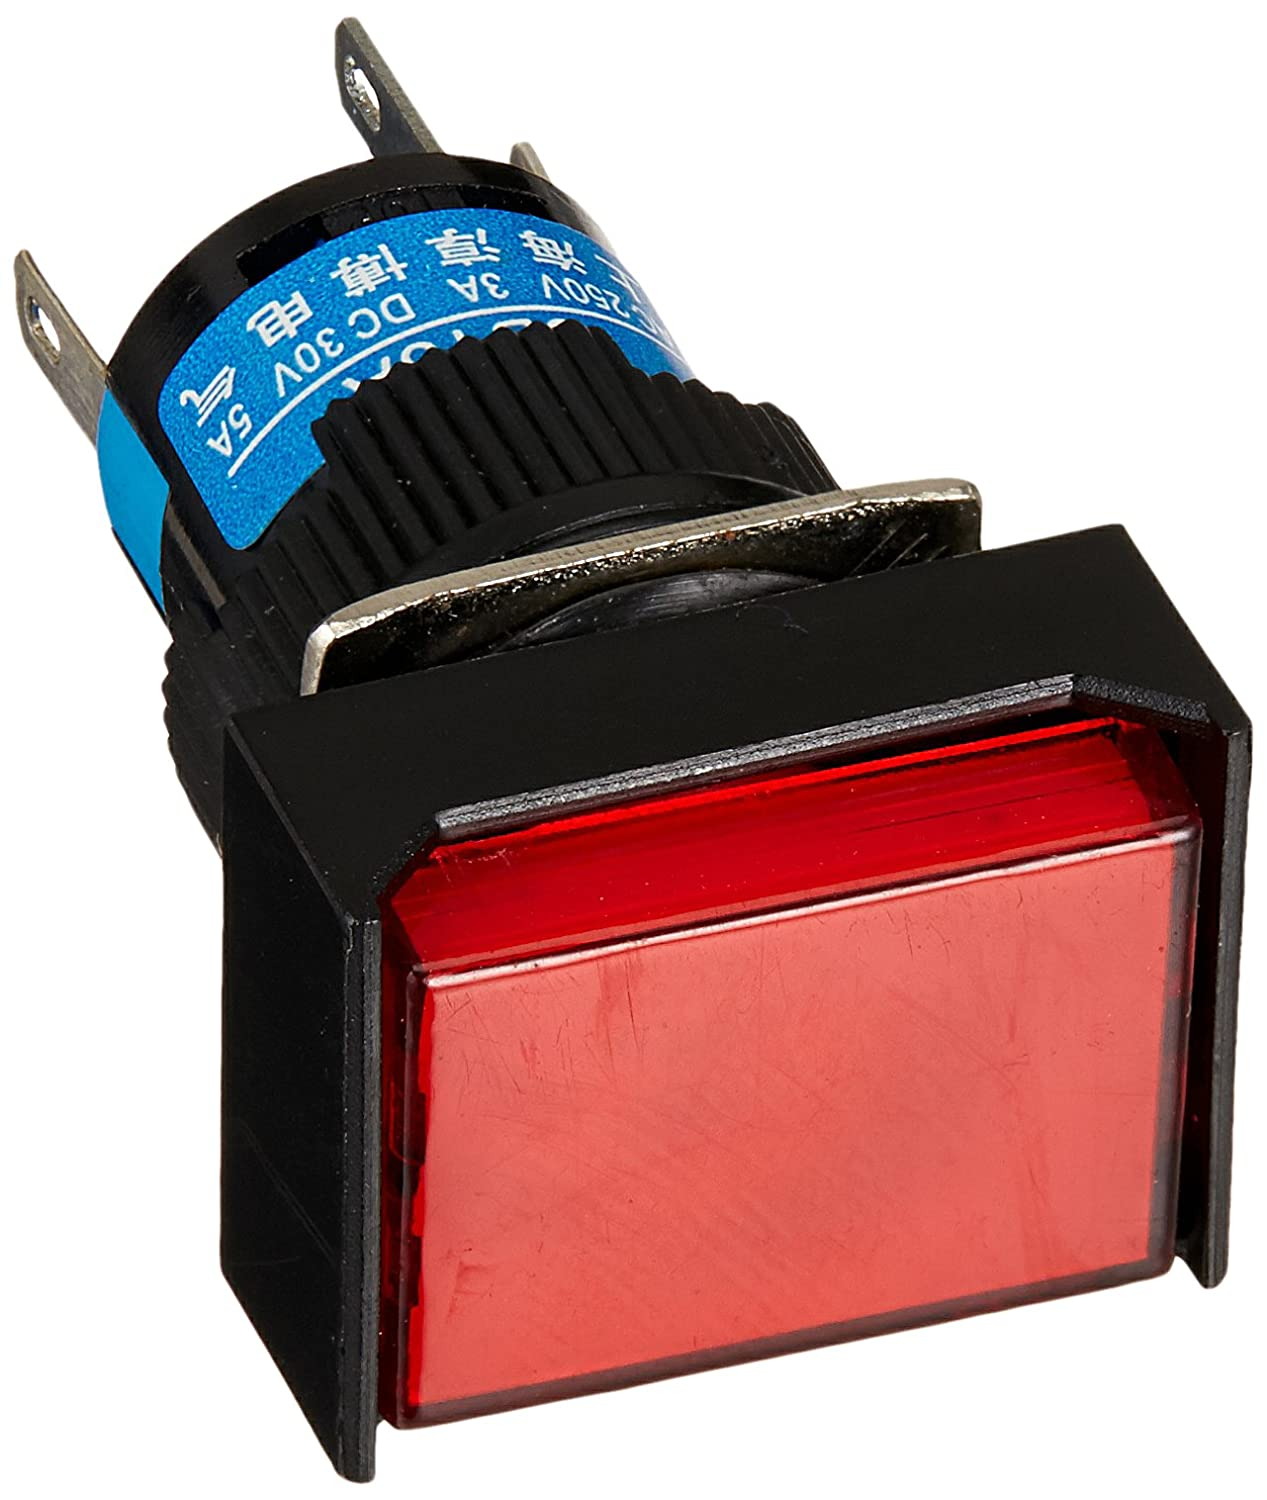 Uxcell DC 24V Light Lamp Latching Pushbutton Switch with 5 Crimp Connectors